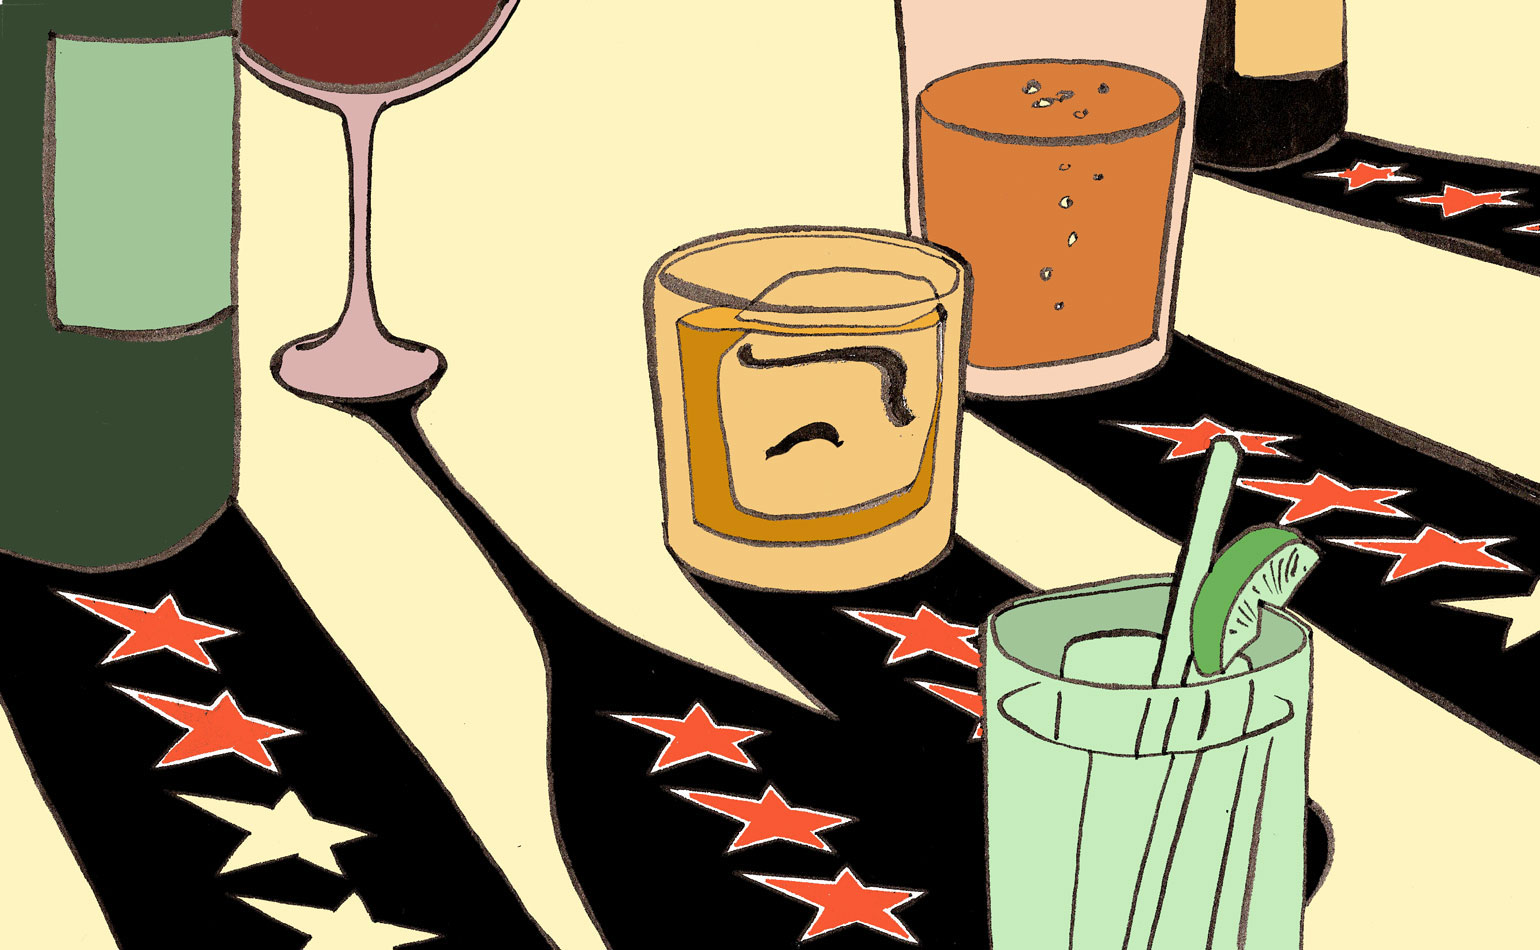 Restaurant clipart restaurant review. Punch why are wine